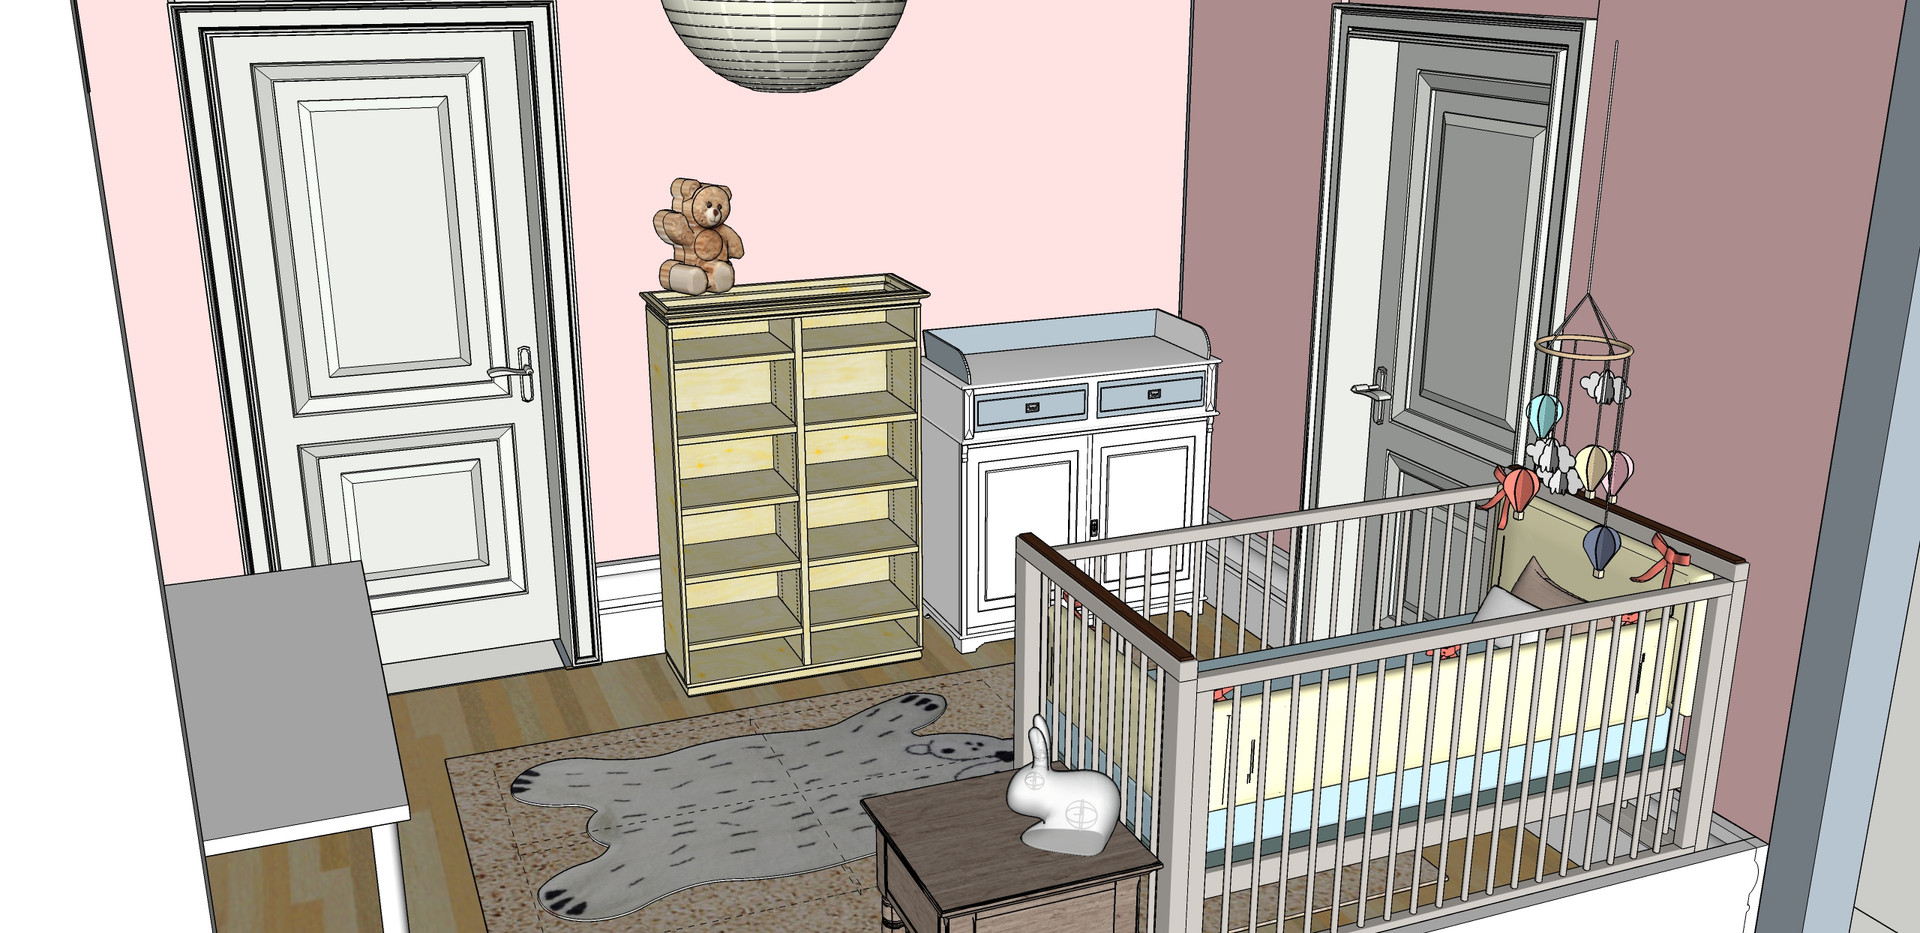 Baby Room - Furniture layout - Changing